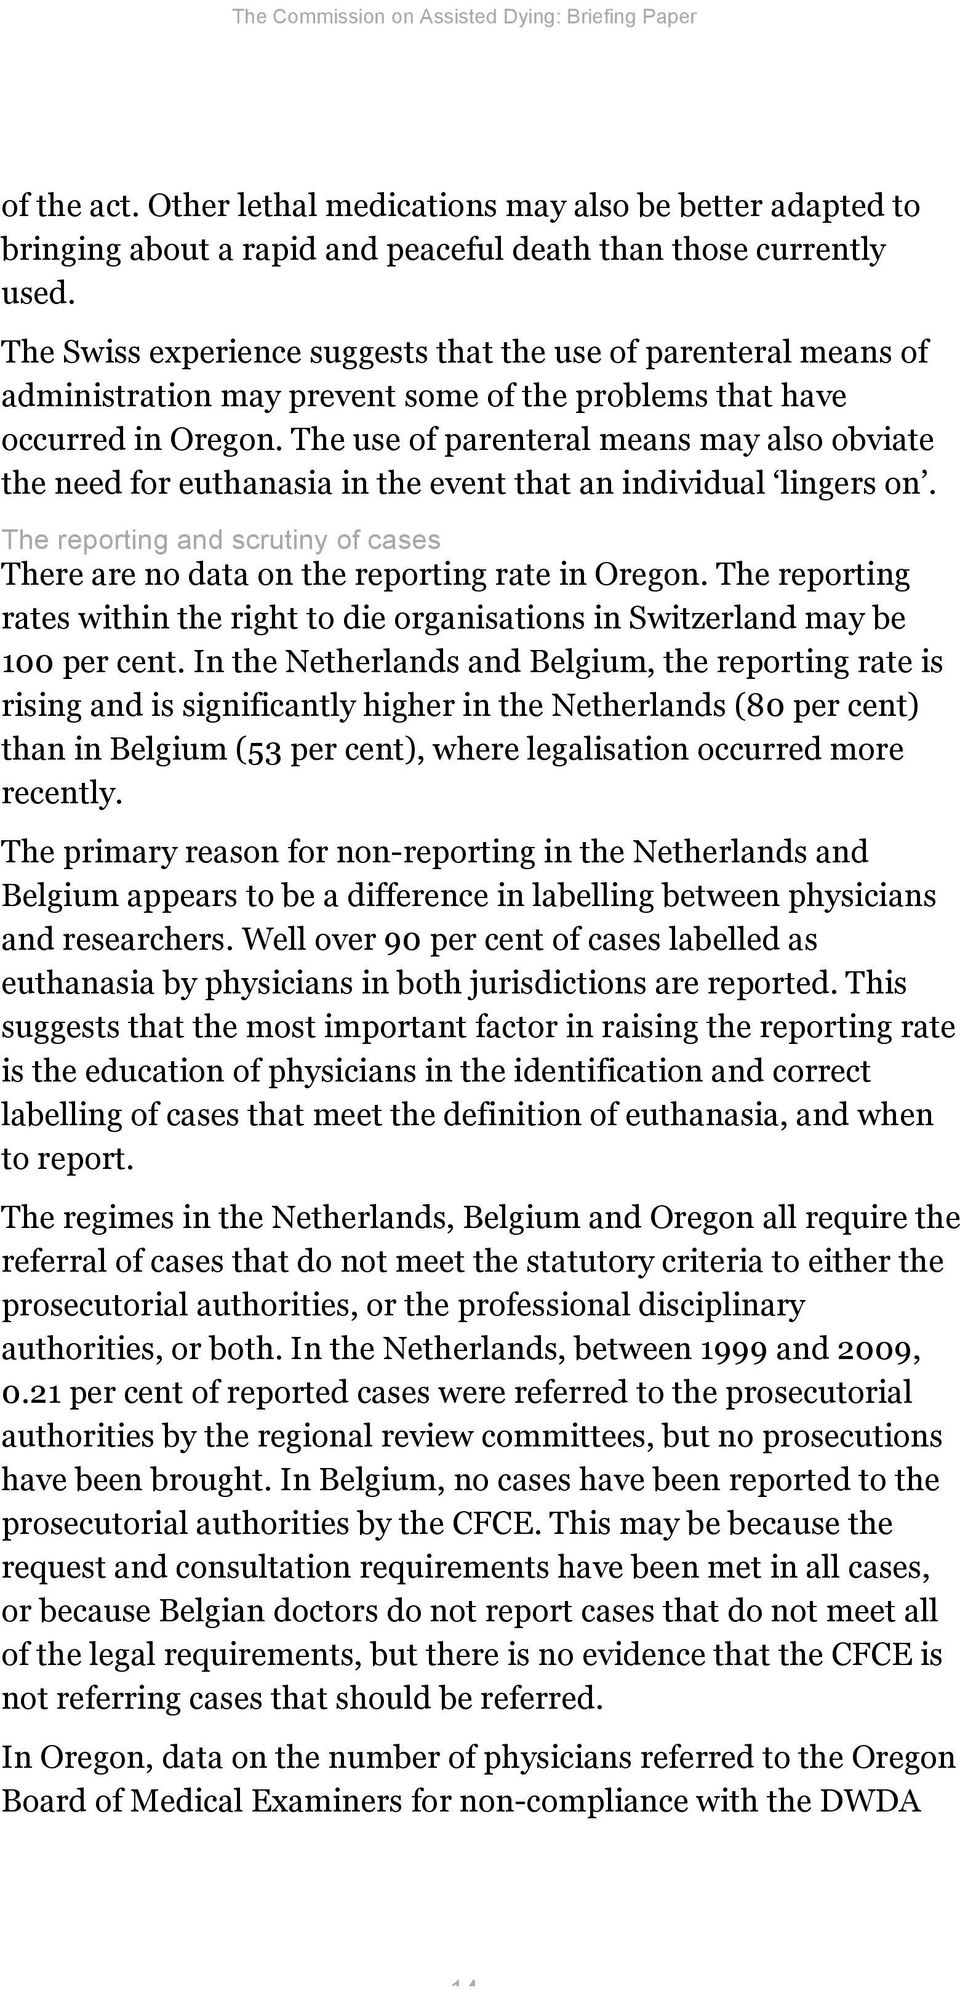 The use of parenteral means may also obviate the need for euthanasia in the event that an individual lingers on. The reporting and scrutiny of cases There are no data on the reporting rate in Oregon.